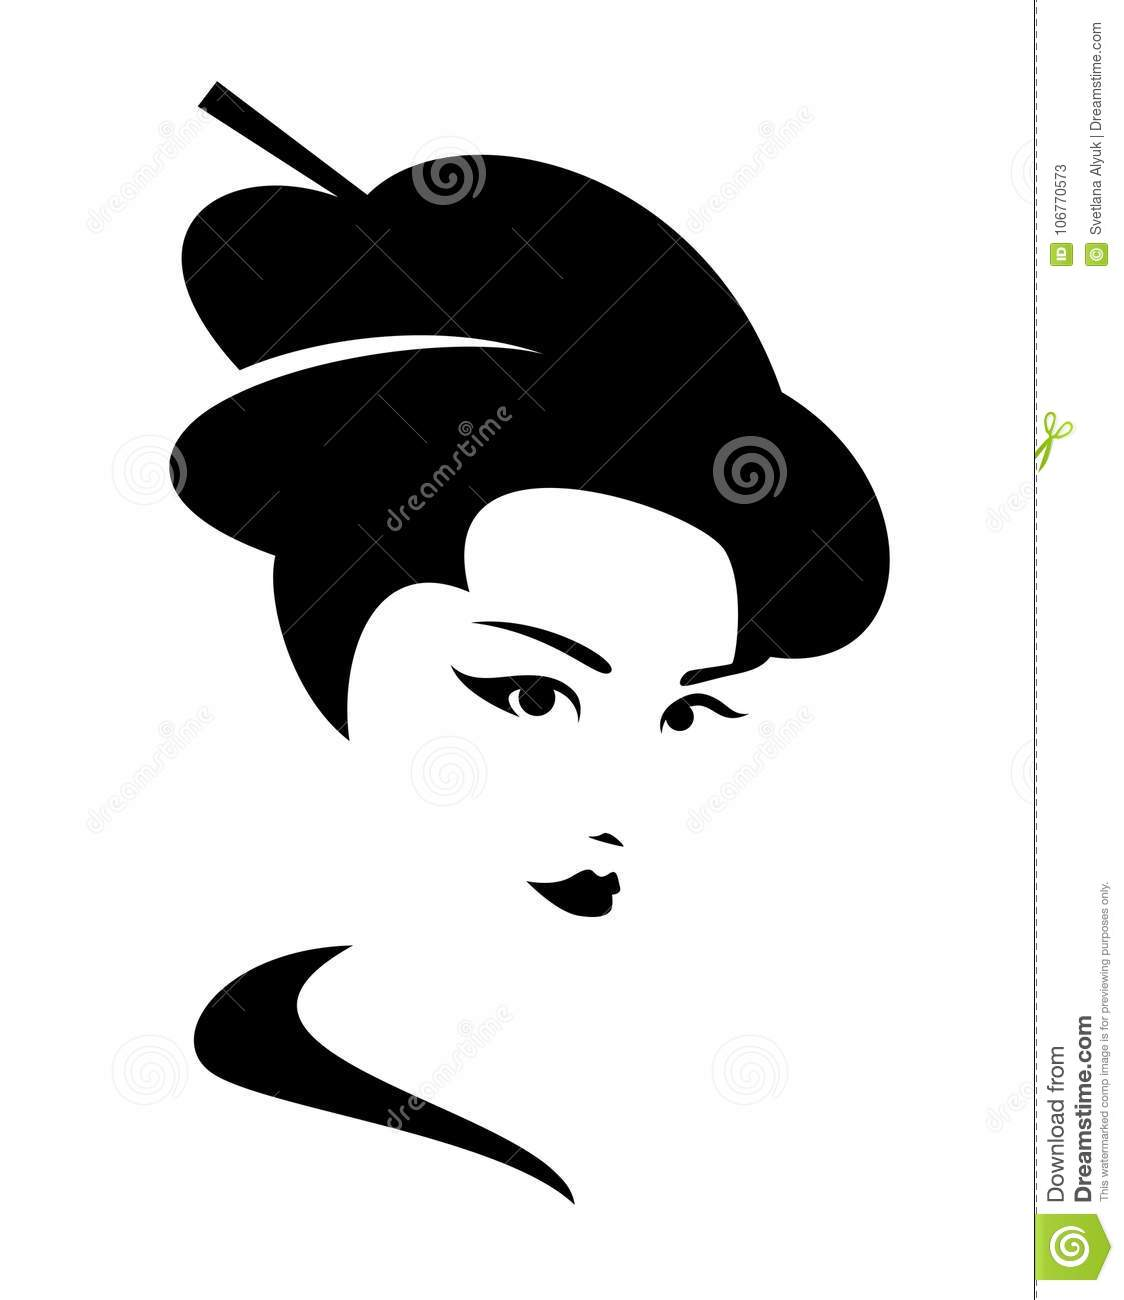 portrait noir et blanc de vecteur de geisha illustration de vecteur illustration du dessin. Black Bedroom Furniture Sets. Home Design Ideas